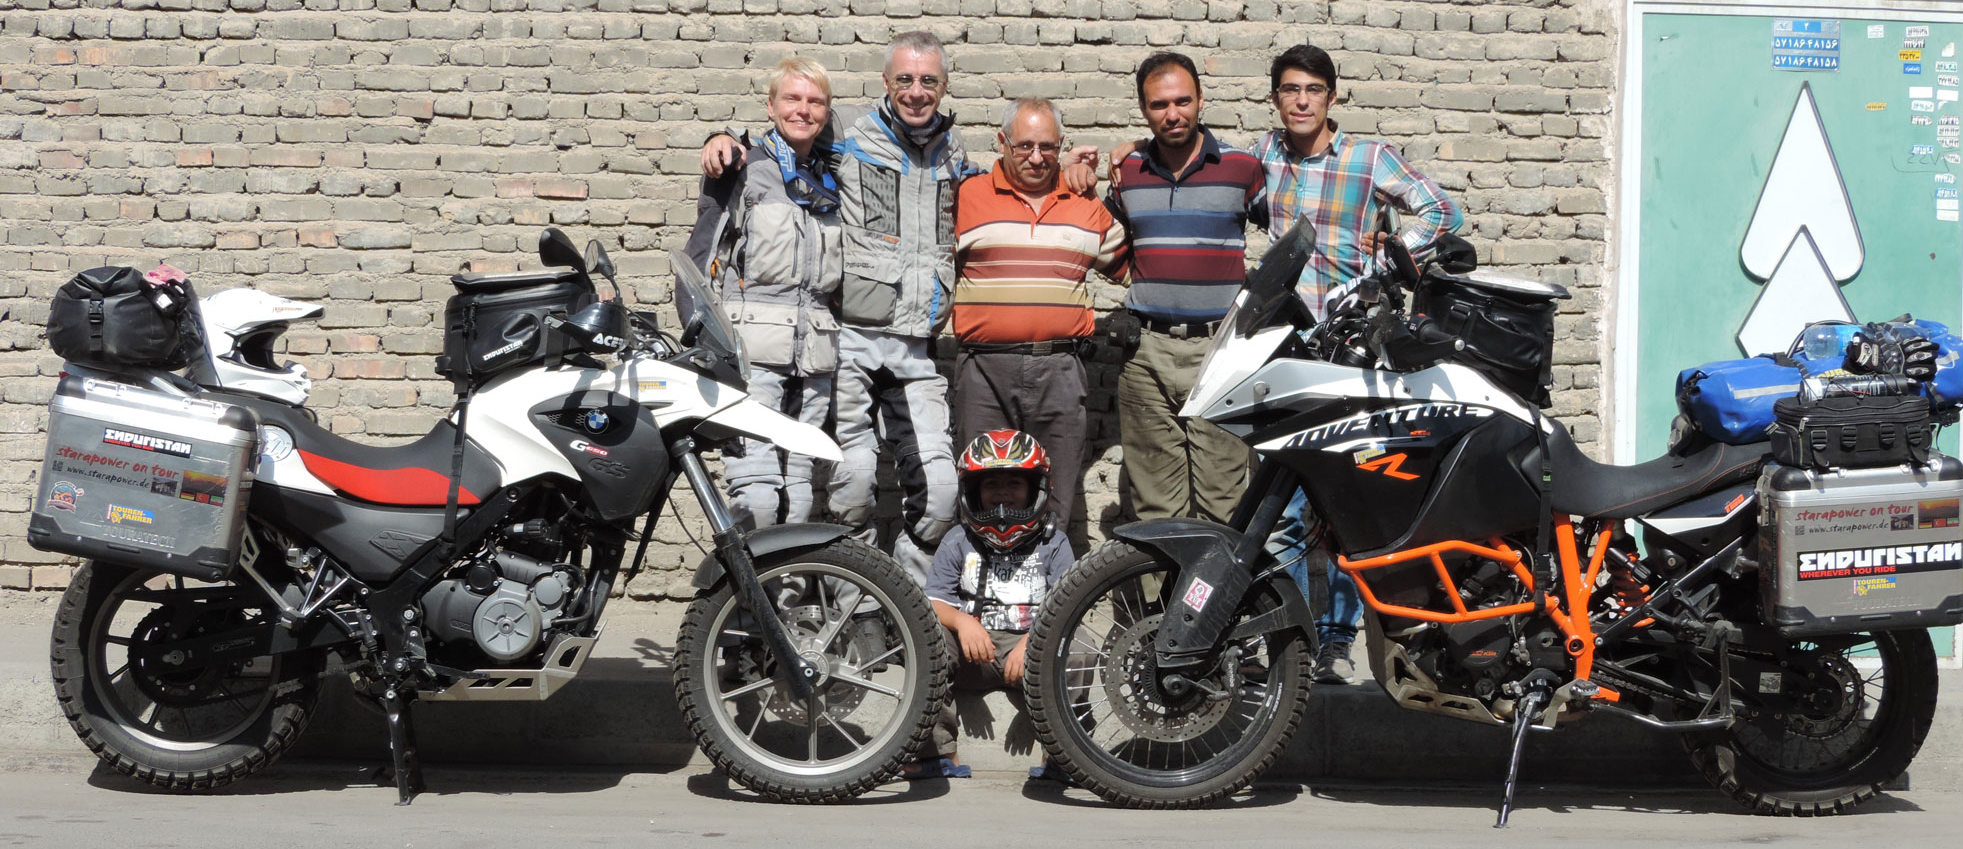 Hossein with German motorbike travelers